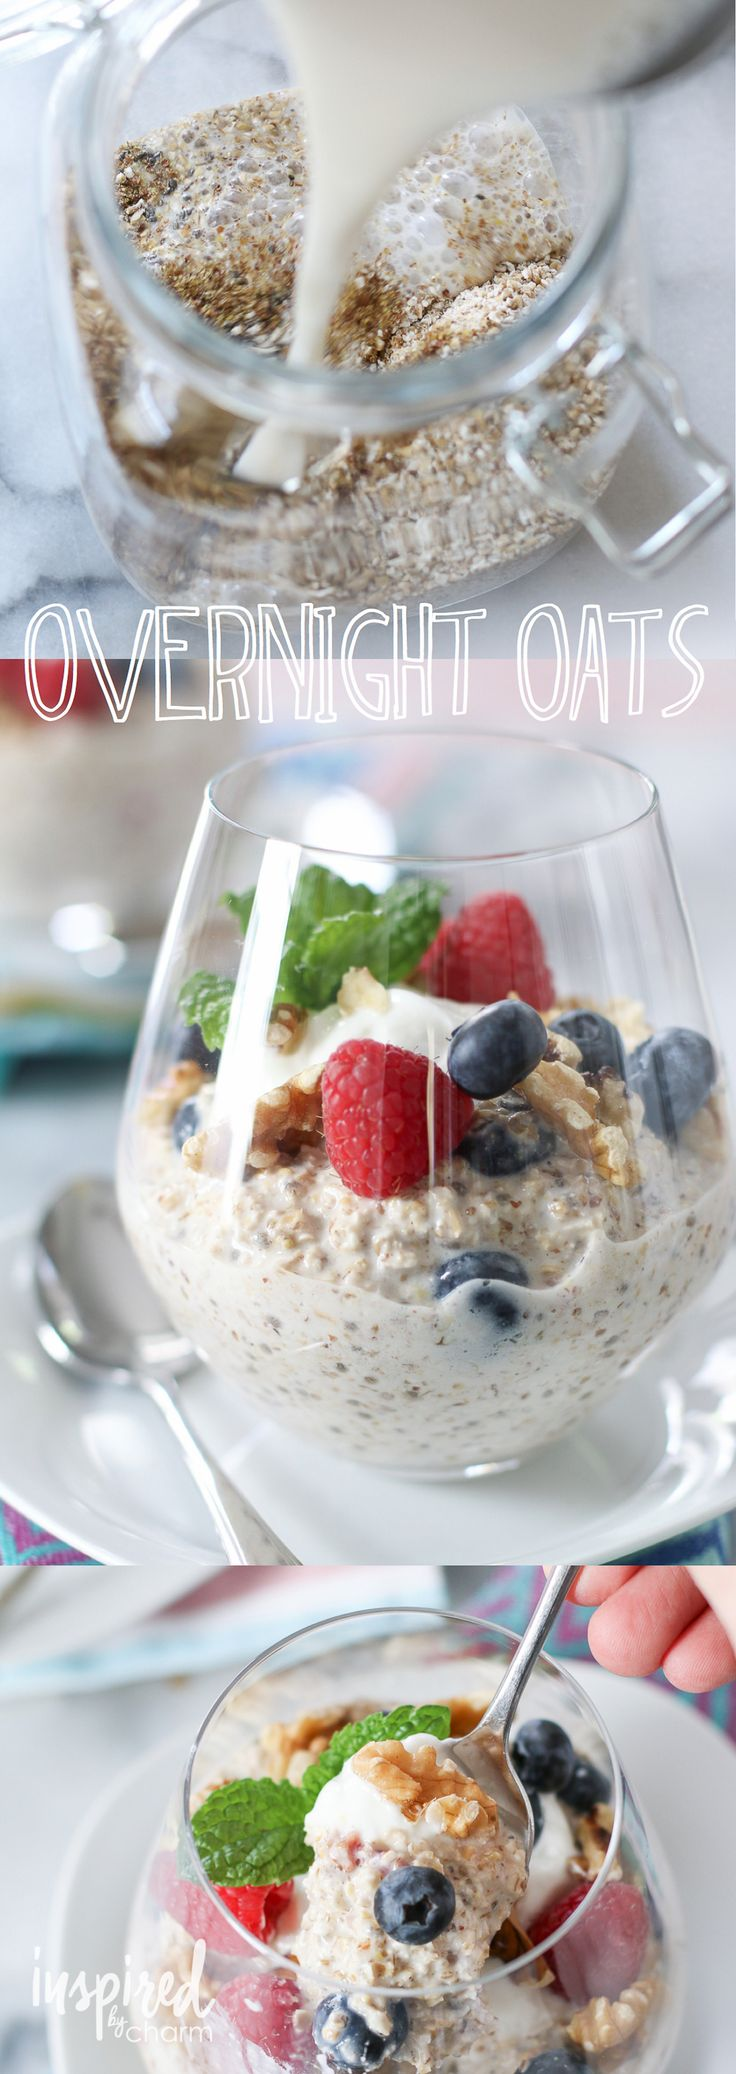 Overnight Oats / an easy, healthy, and delicious way to start your day! Prep the night before and devour in the morning. Love this variation (and presentation)!